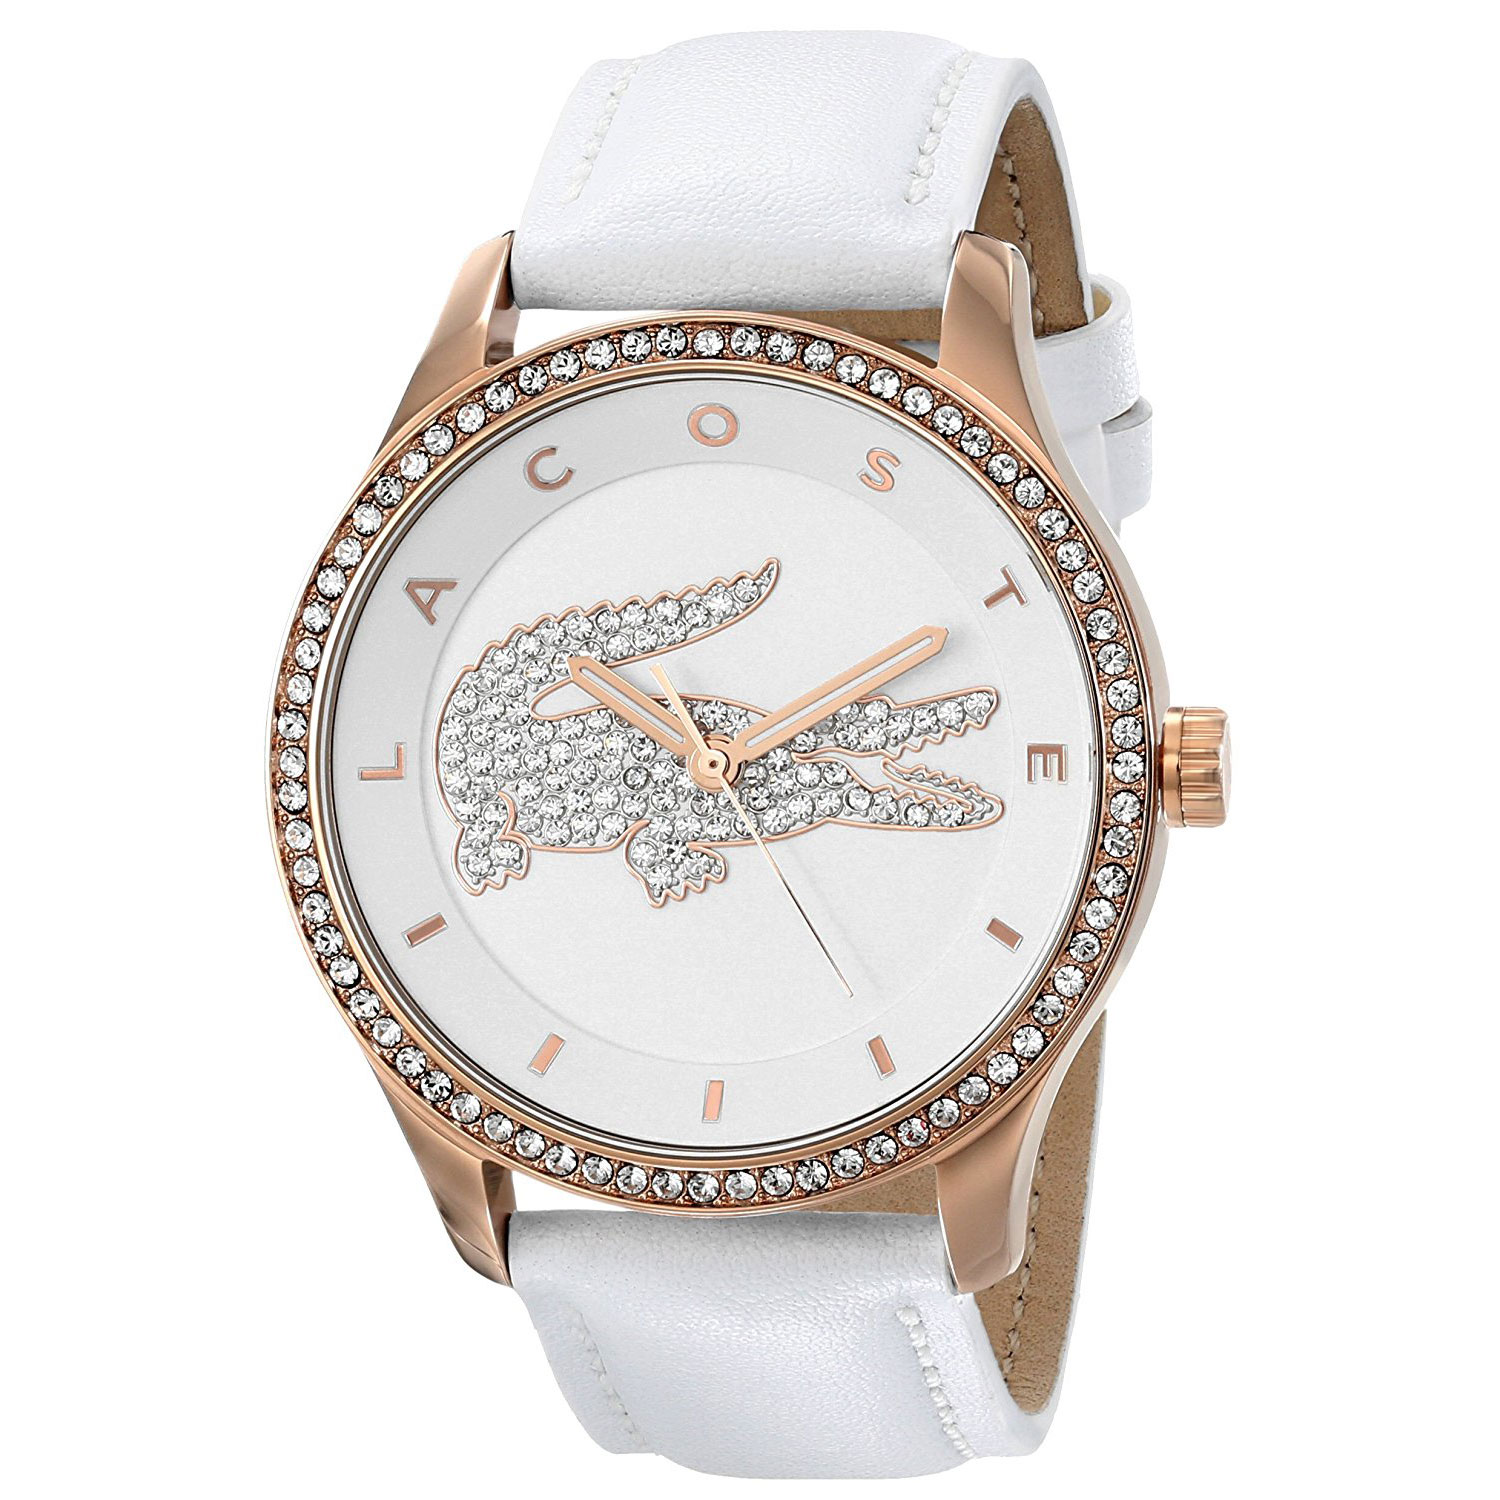 lacoste watch with rose gold stainless steel and white leather strap 2000821. Black Bedroom Furniture Sets. Home Design Ideas